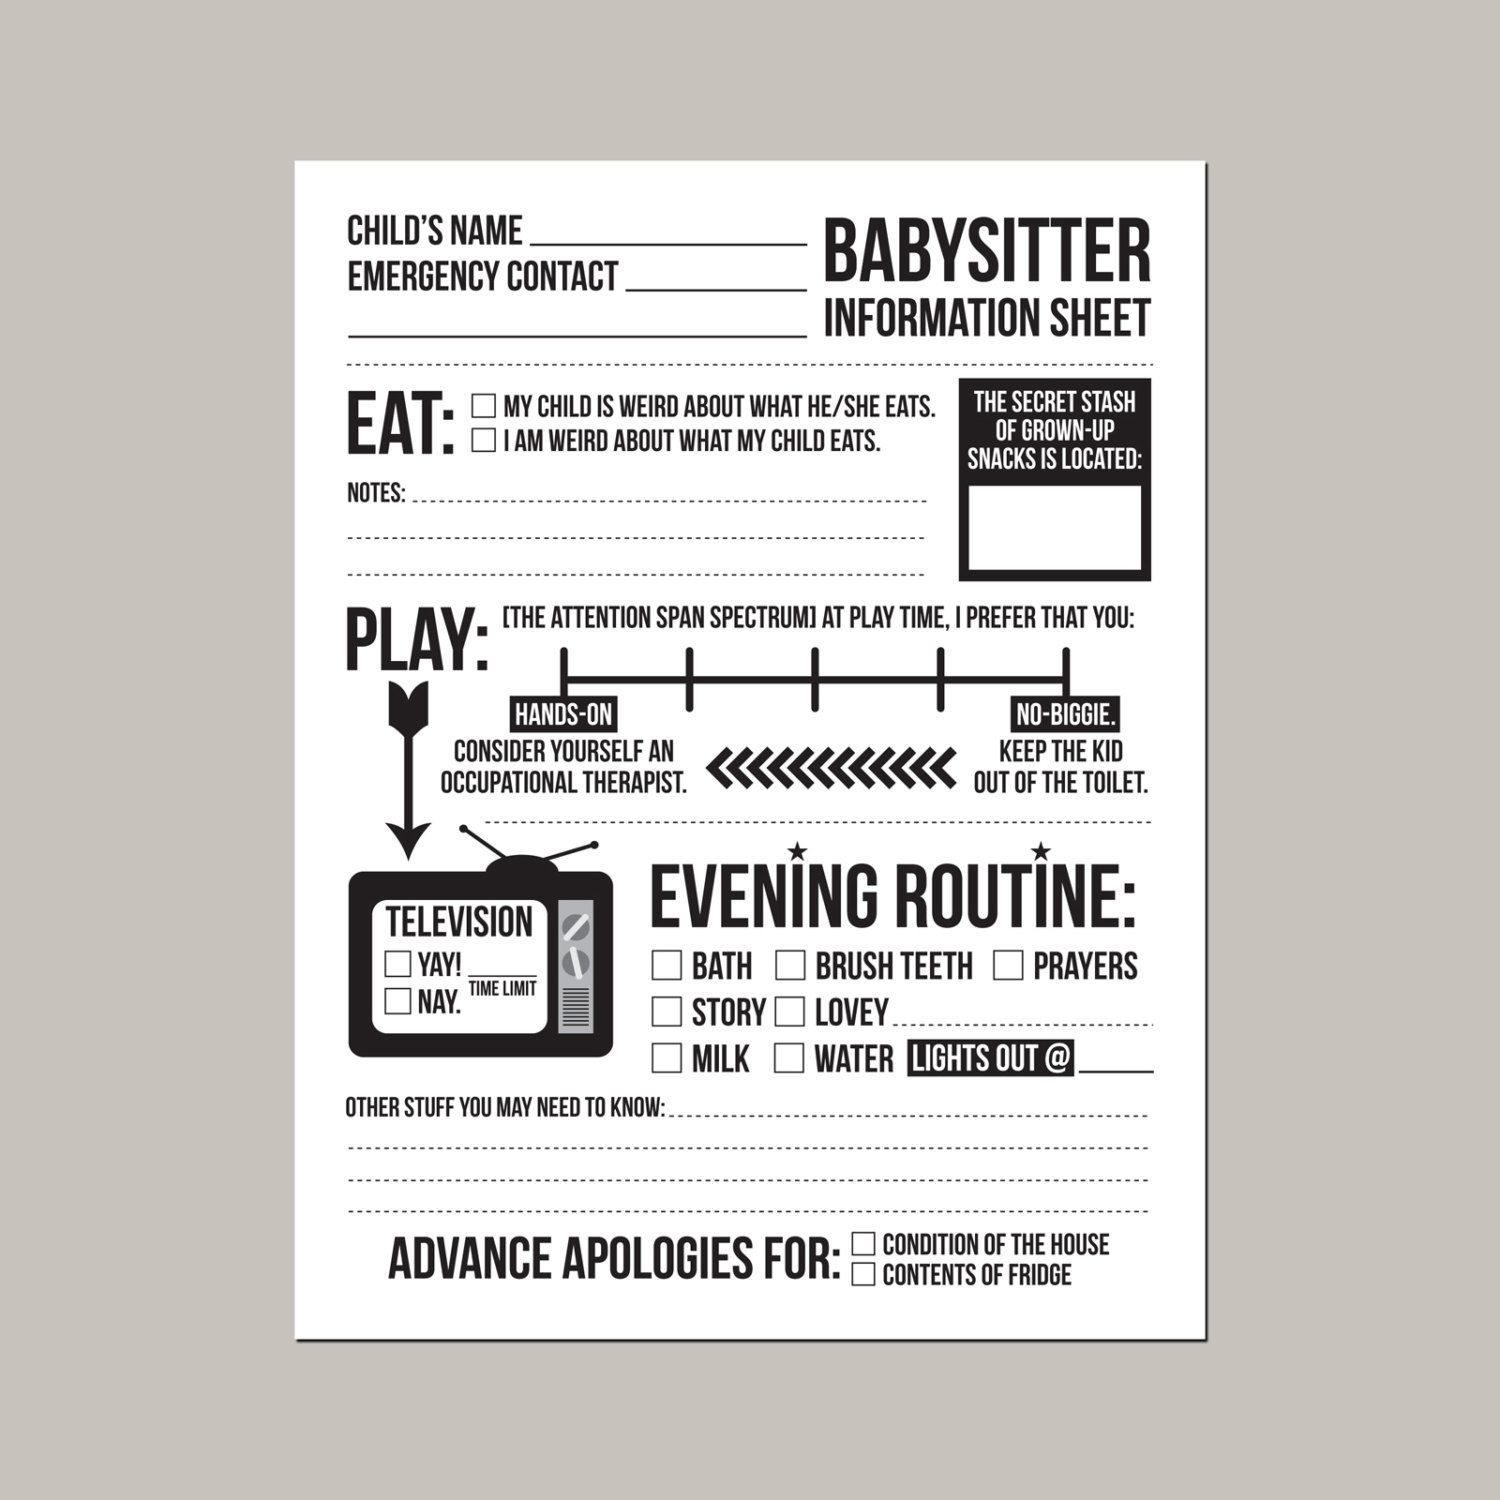 information for babysitter template - Kubre.euforic.co